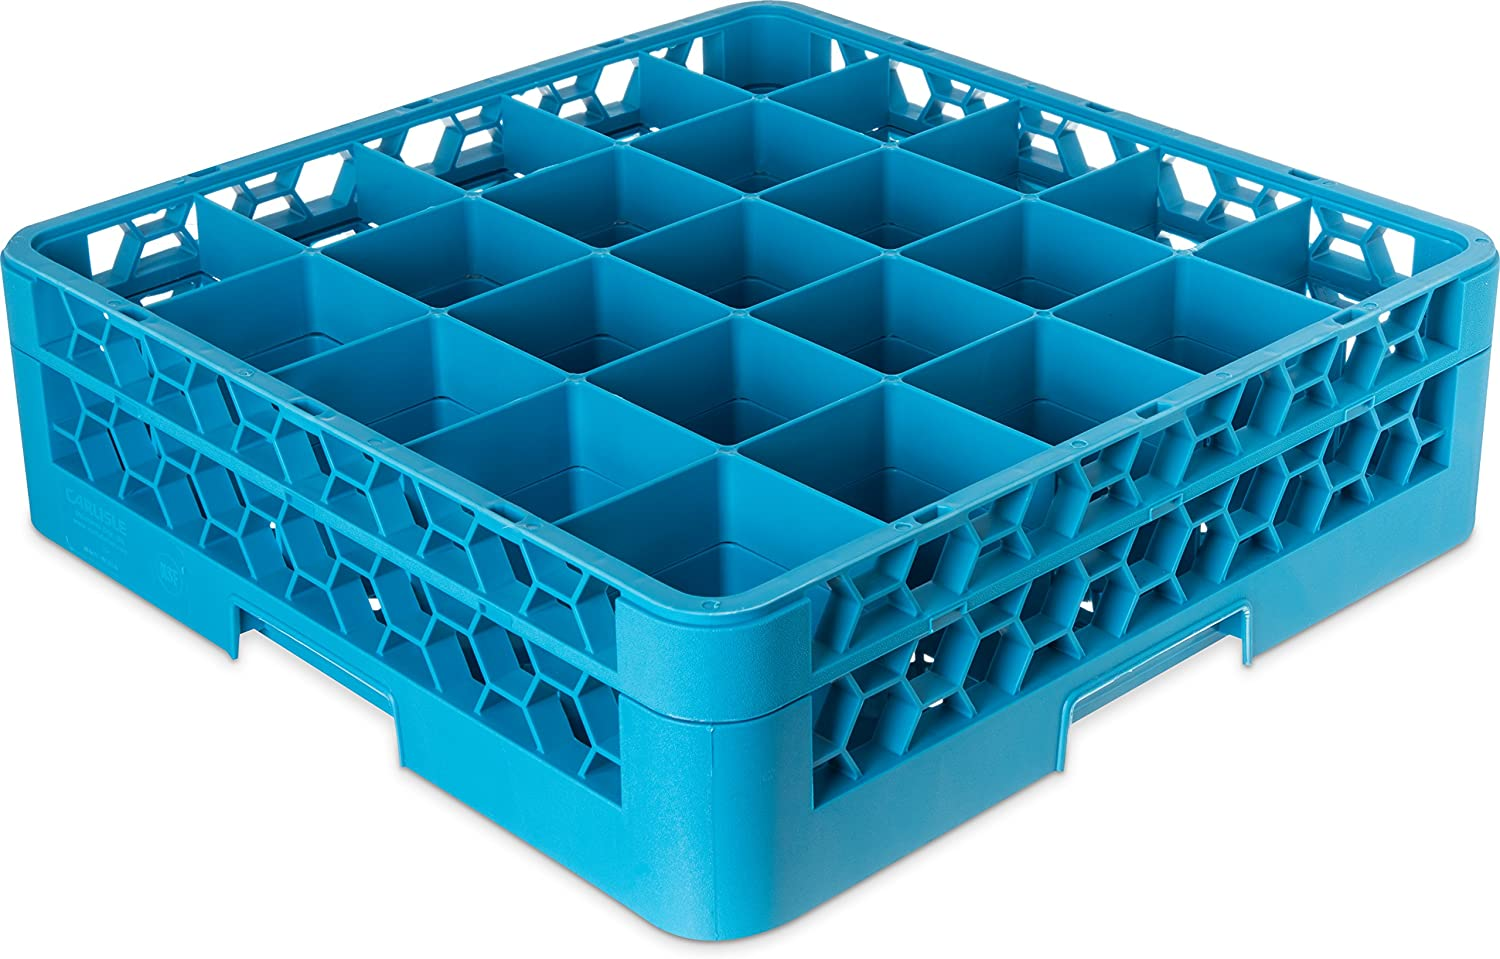 Carlisle Opticlean 25-Compartment Glass Rack with 1 Extender, Blue